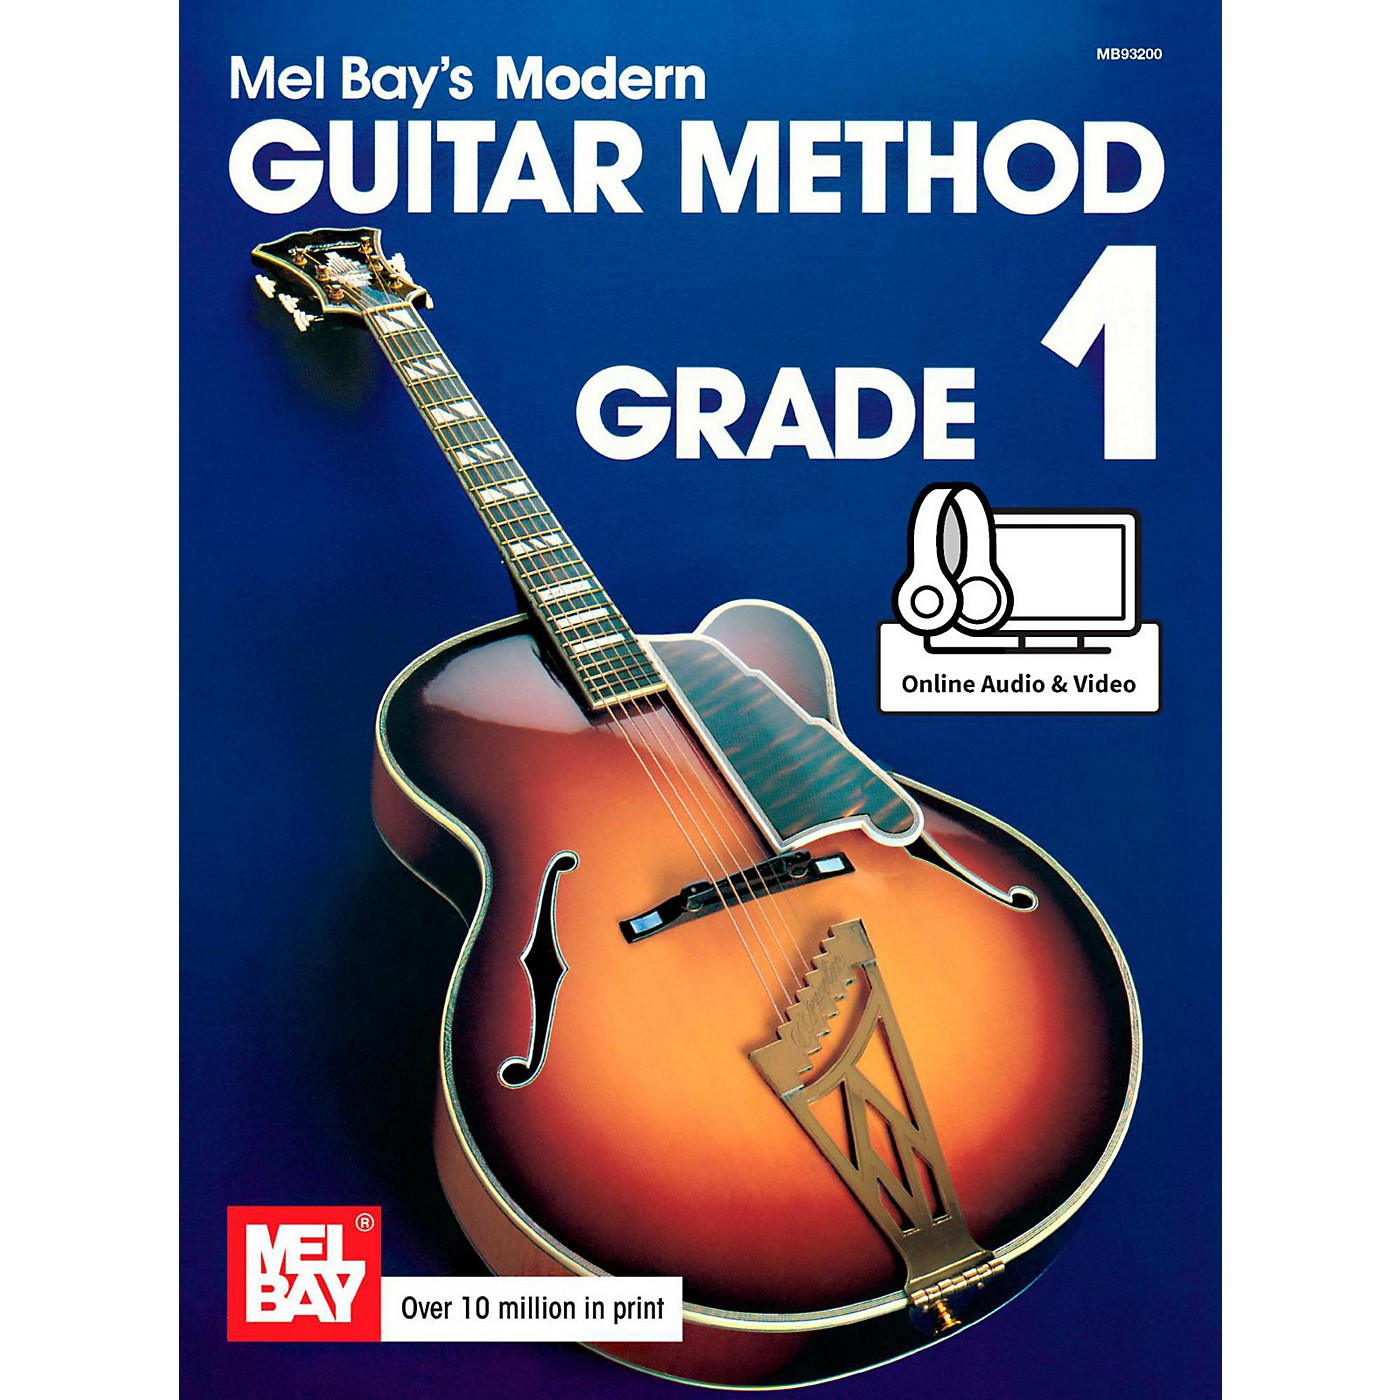 Mel Bay Modern Guitar Method Grade 1 Book thumbnail